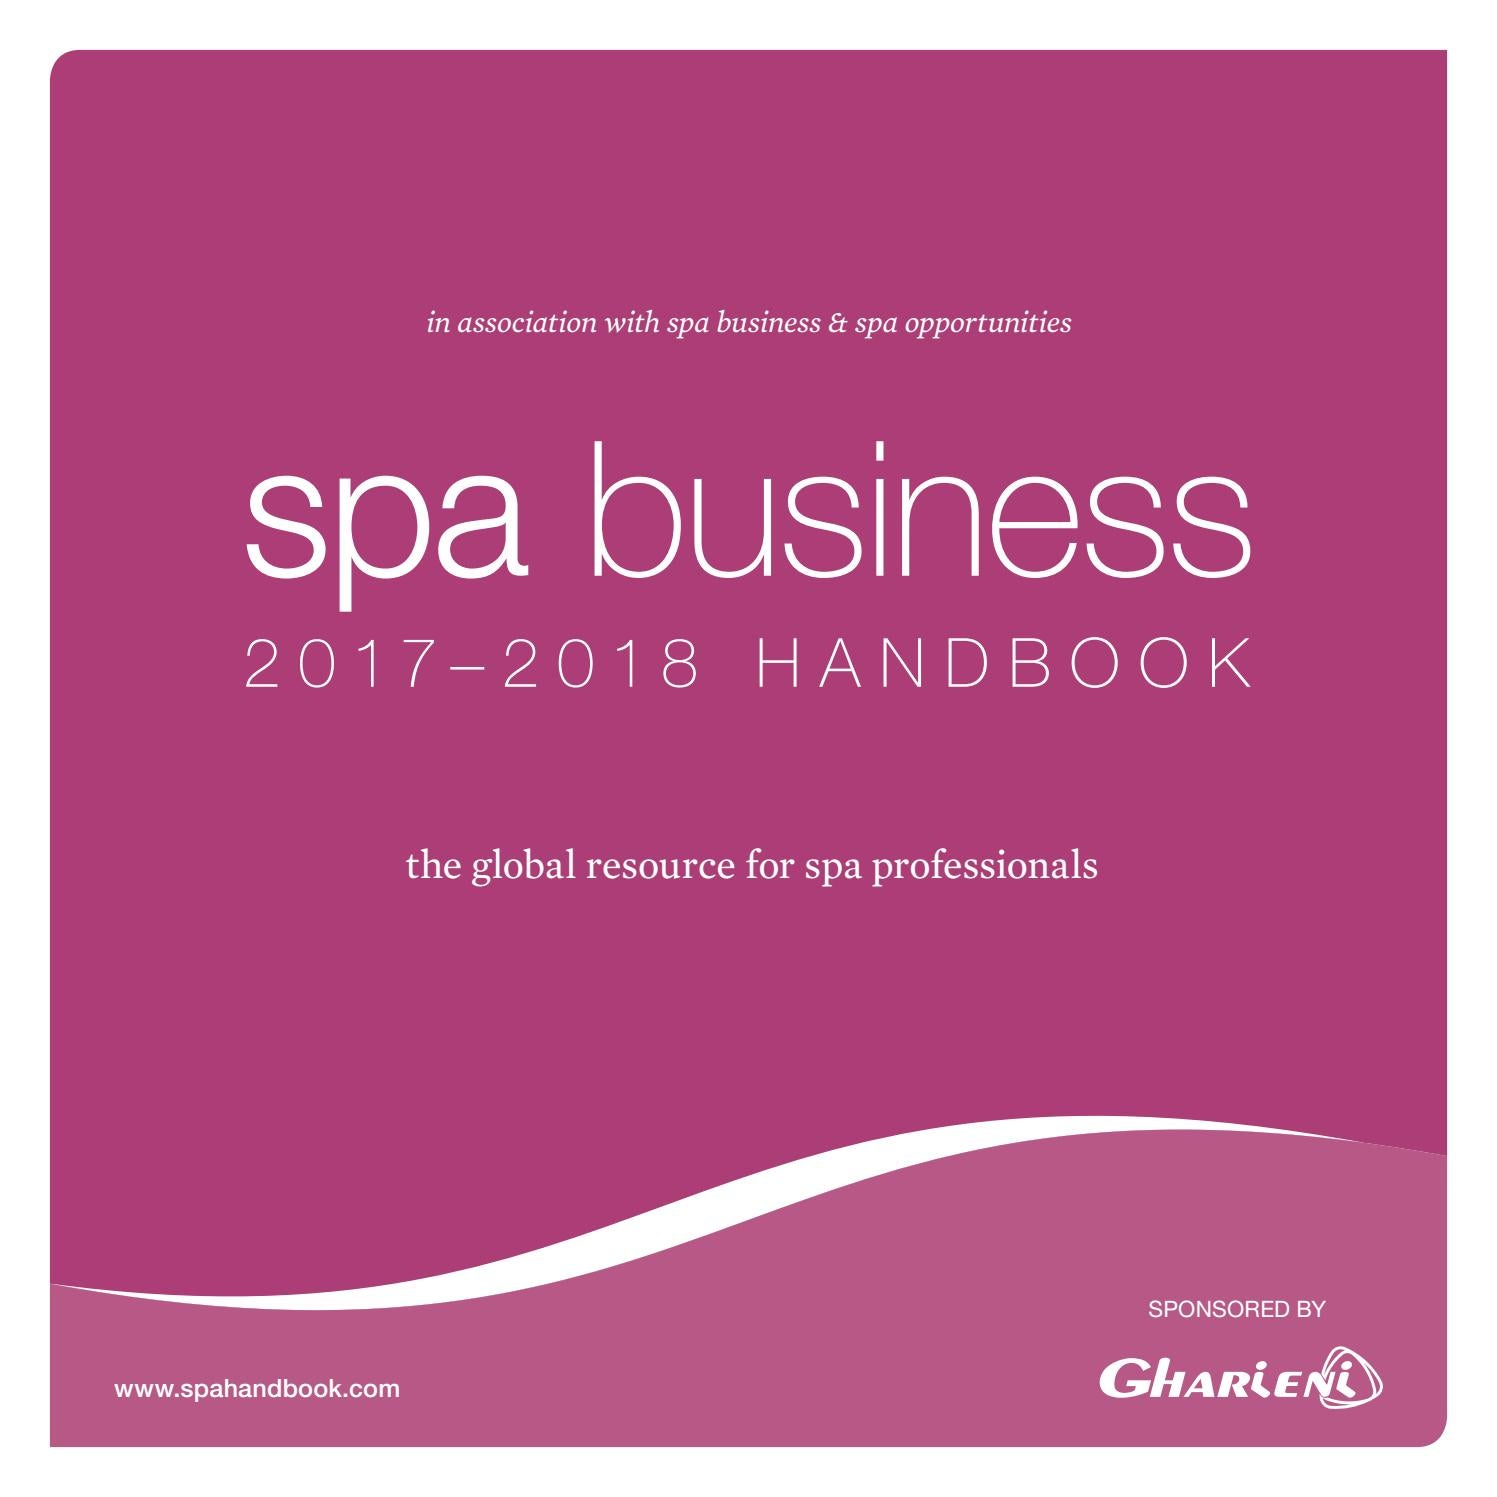 Spa Business Handbook 2017 - 2018 by Leisure Media - issuu